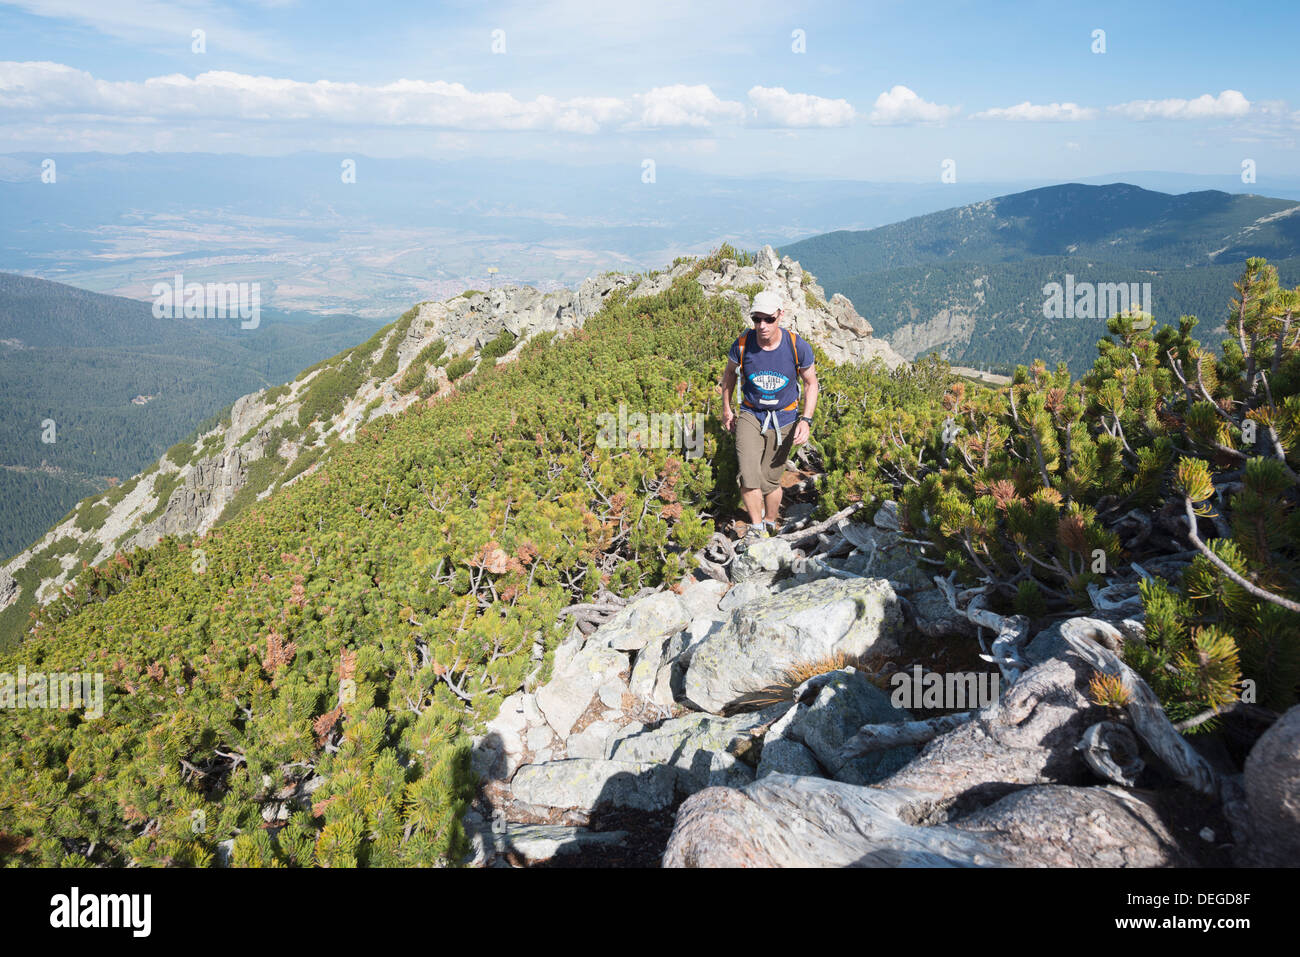 Hiker on trail, Pirin National Park, UNESCO World Heritage Site, near Bansko, Bulgaria, Europe - Stock Image